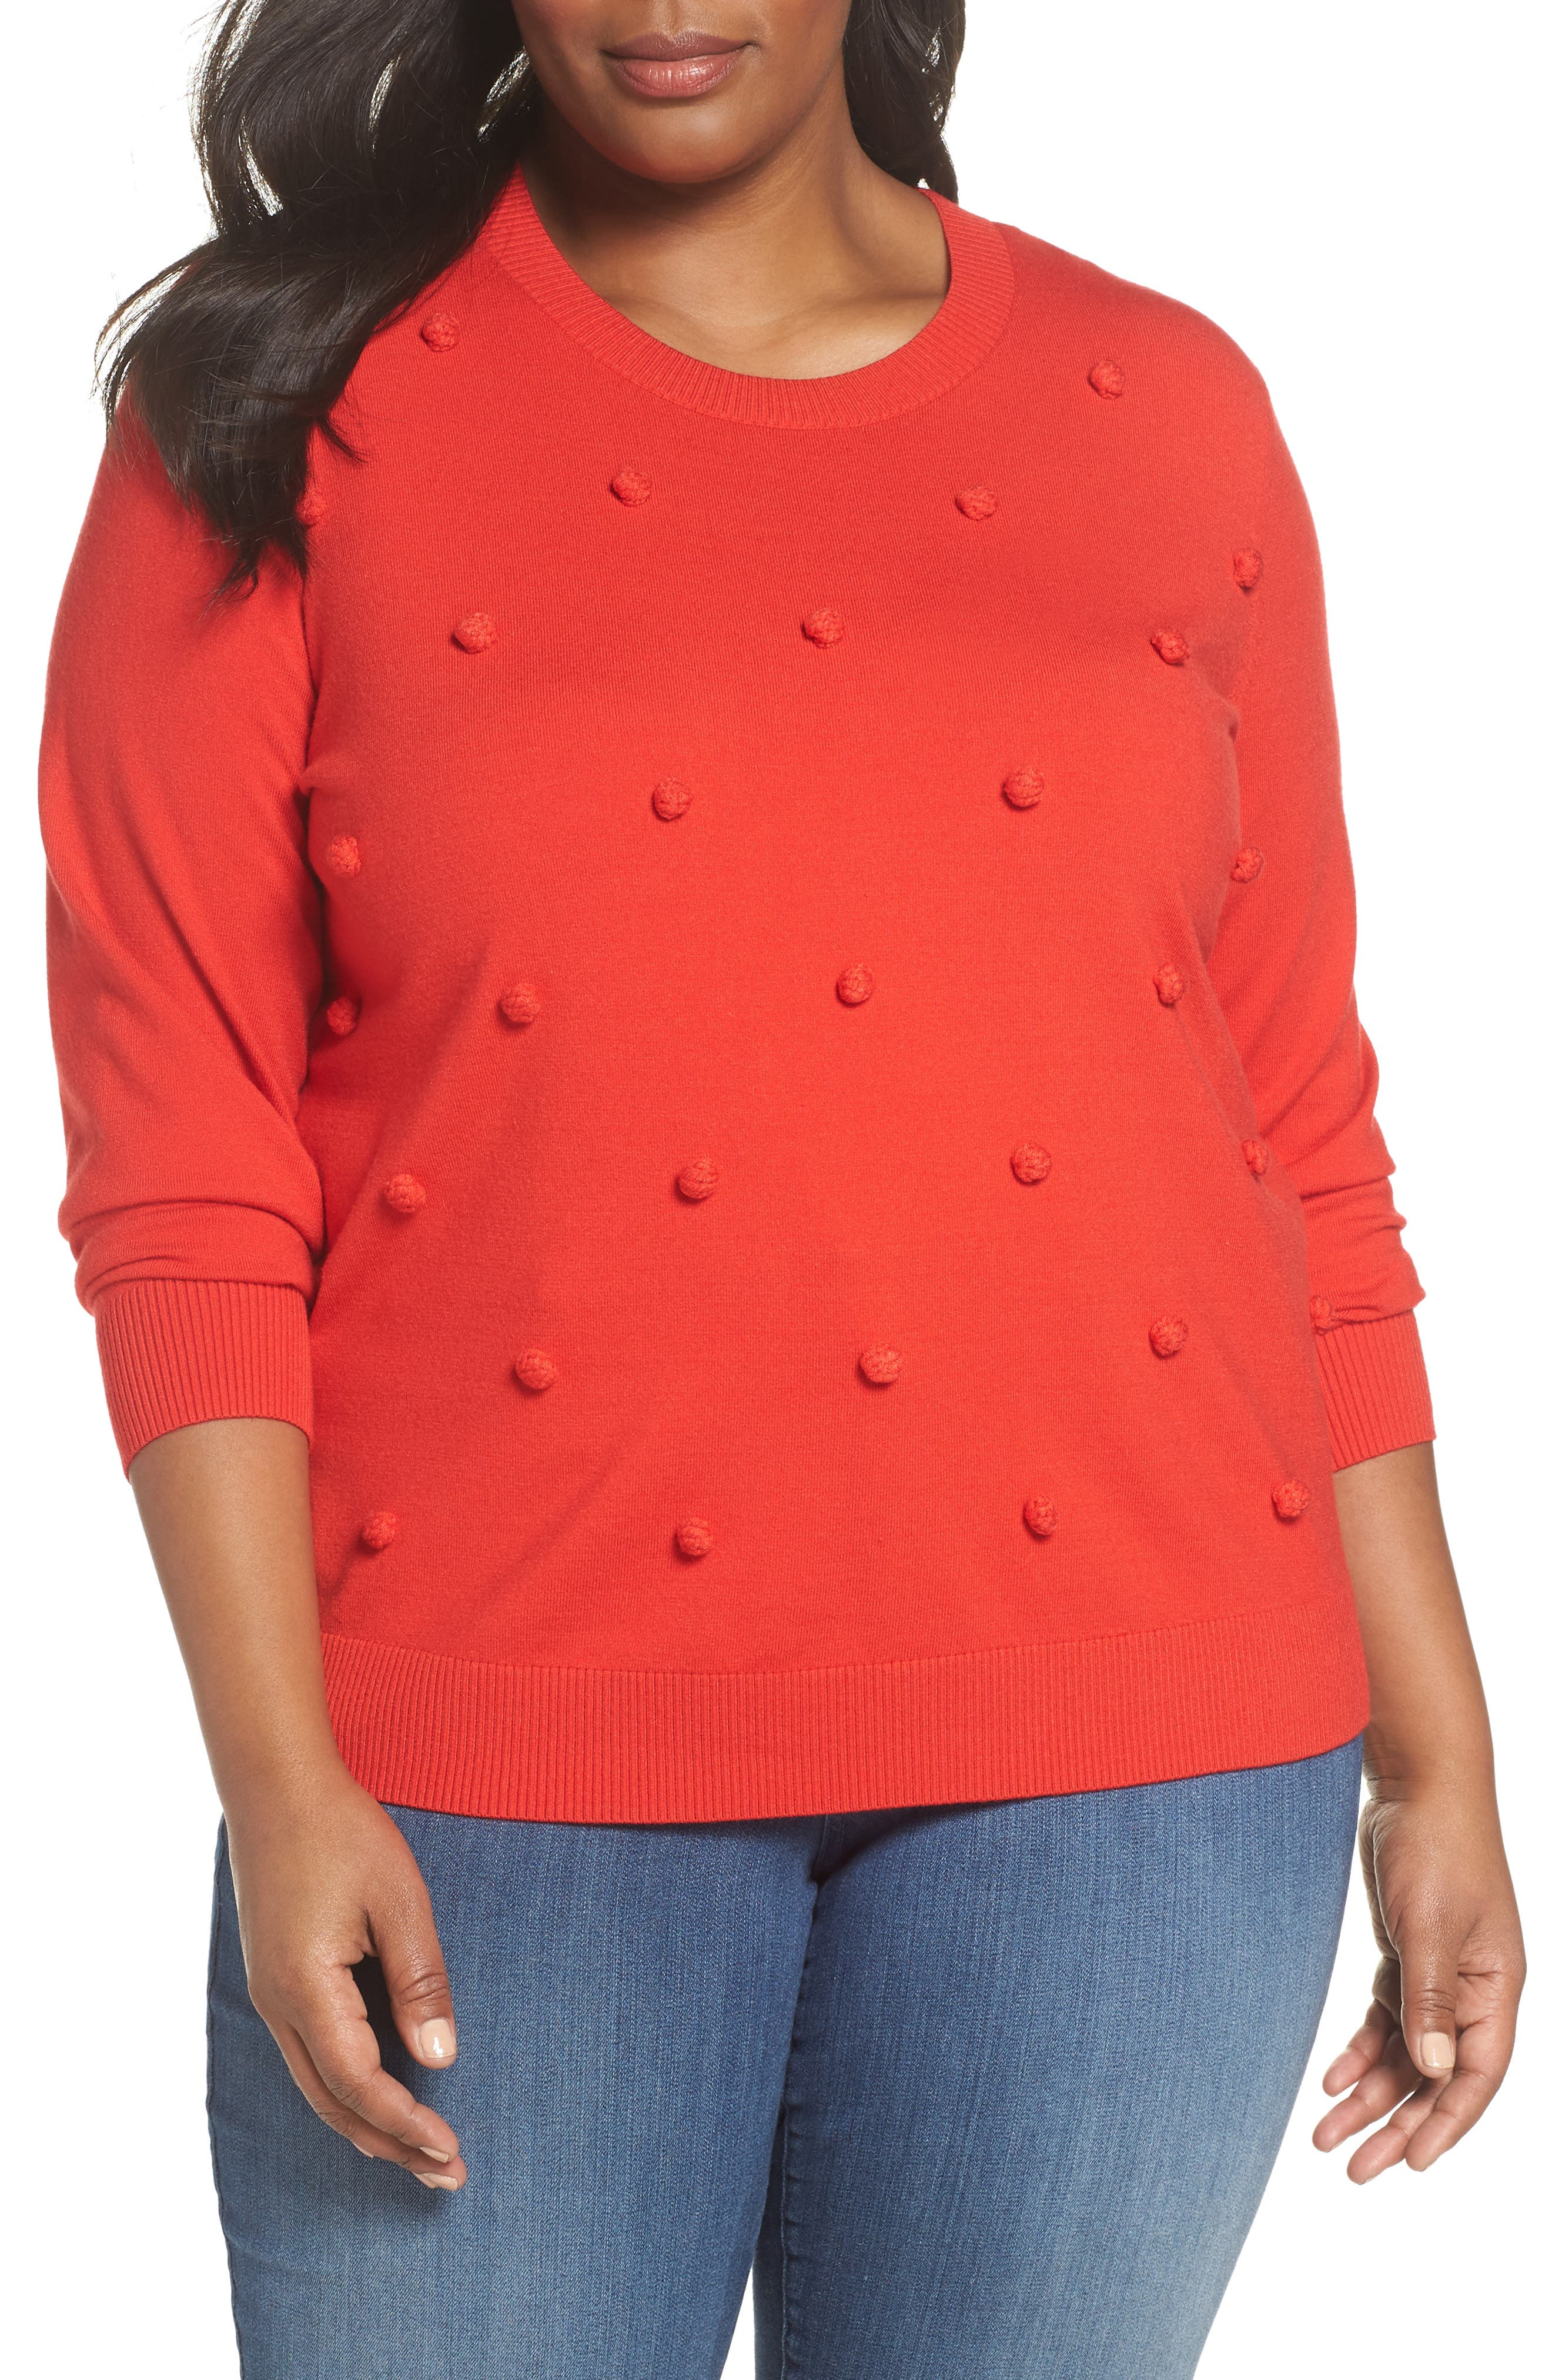 Popcorn Stitch Sweater,                         Main,                         color, RED TOMATO